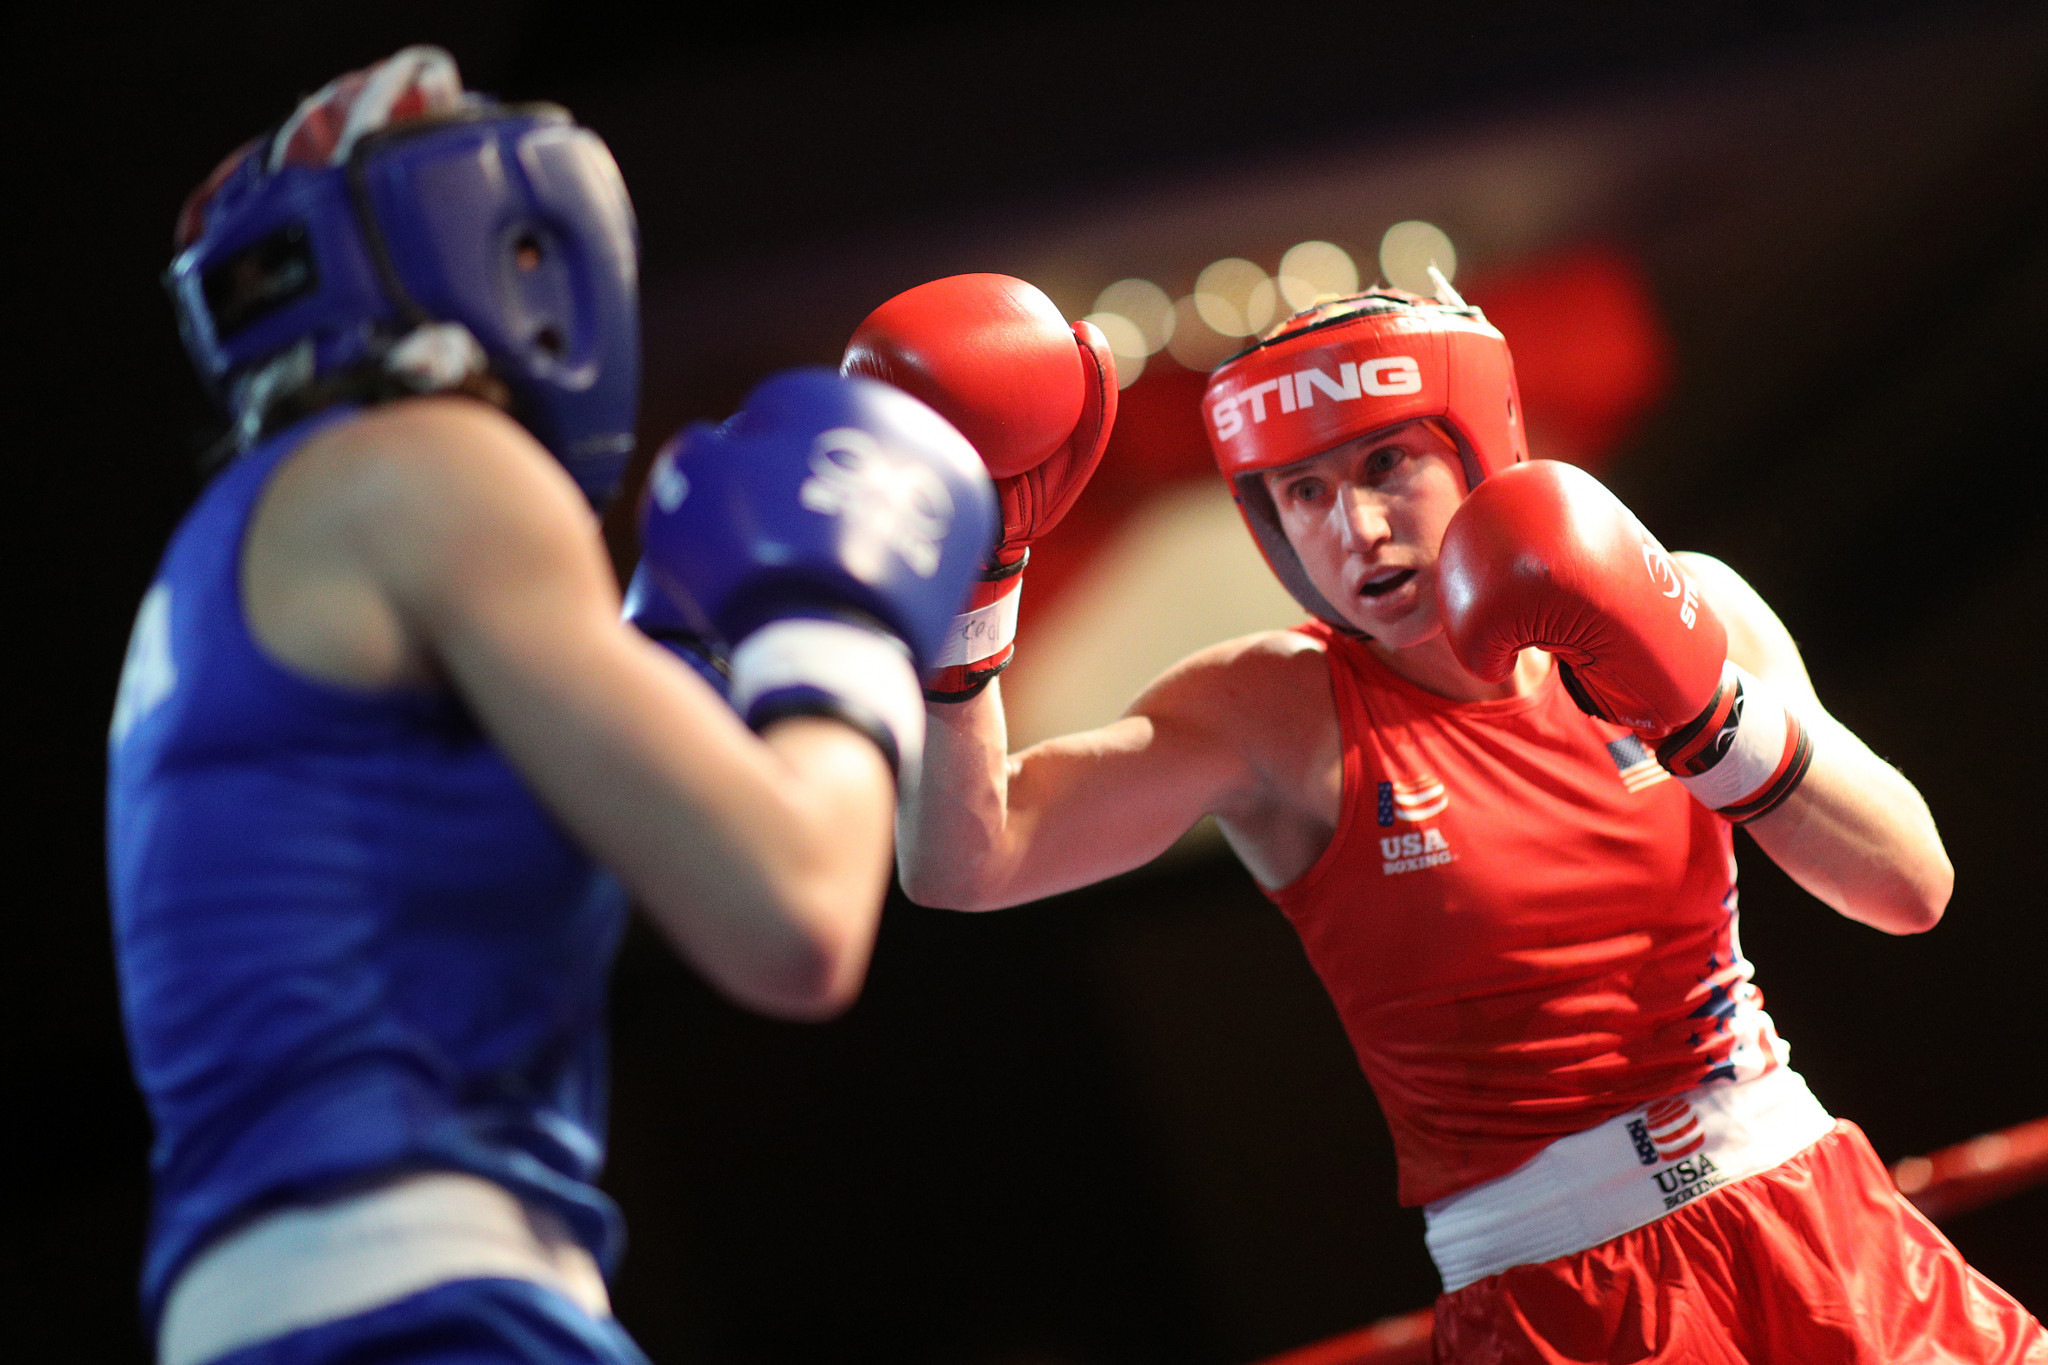 Virginia Fuchs is among the participants at the USA Boxing training camp ©USA Boxing